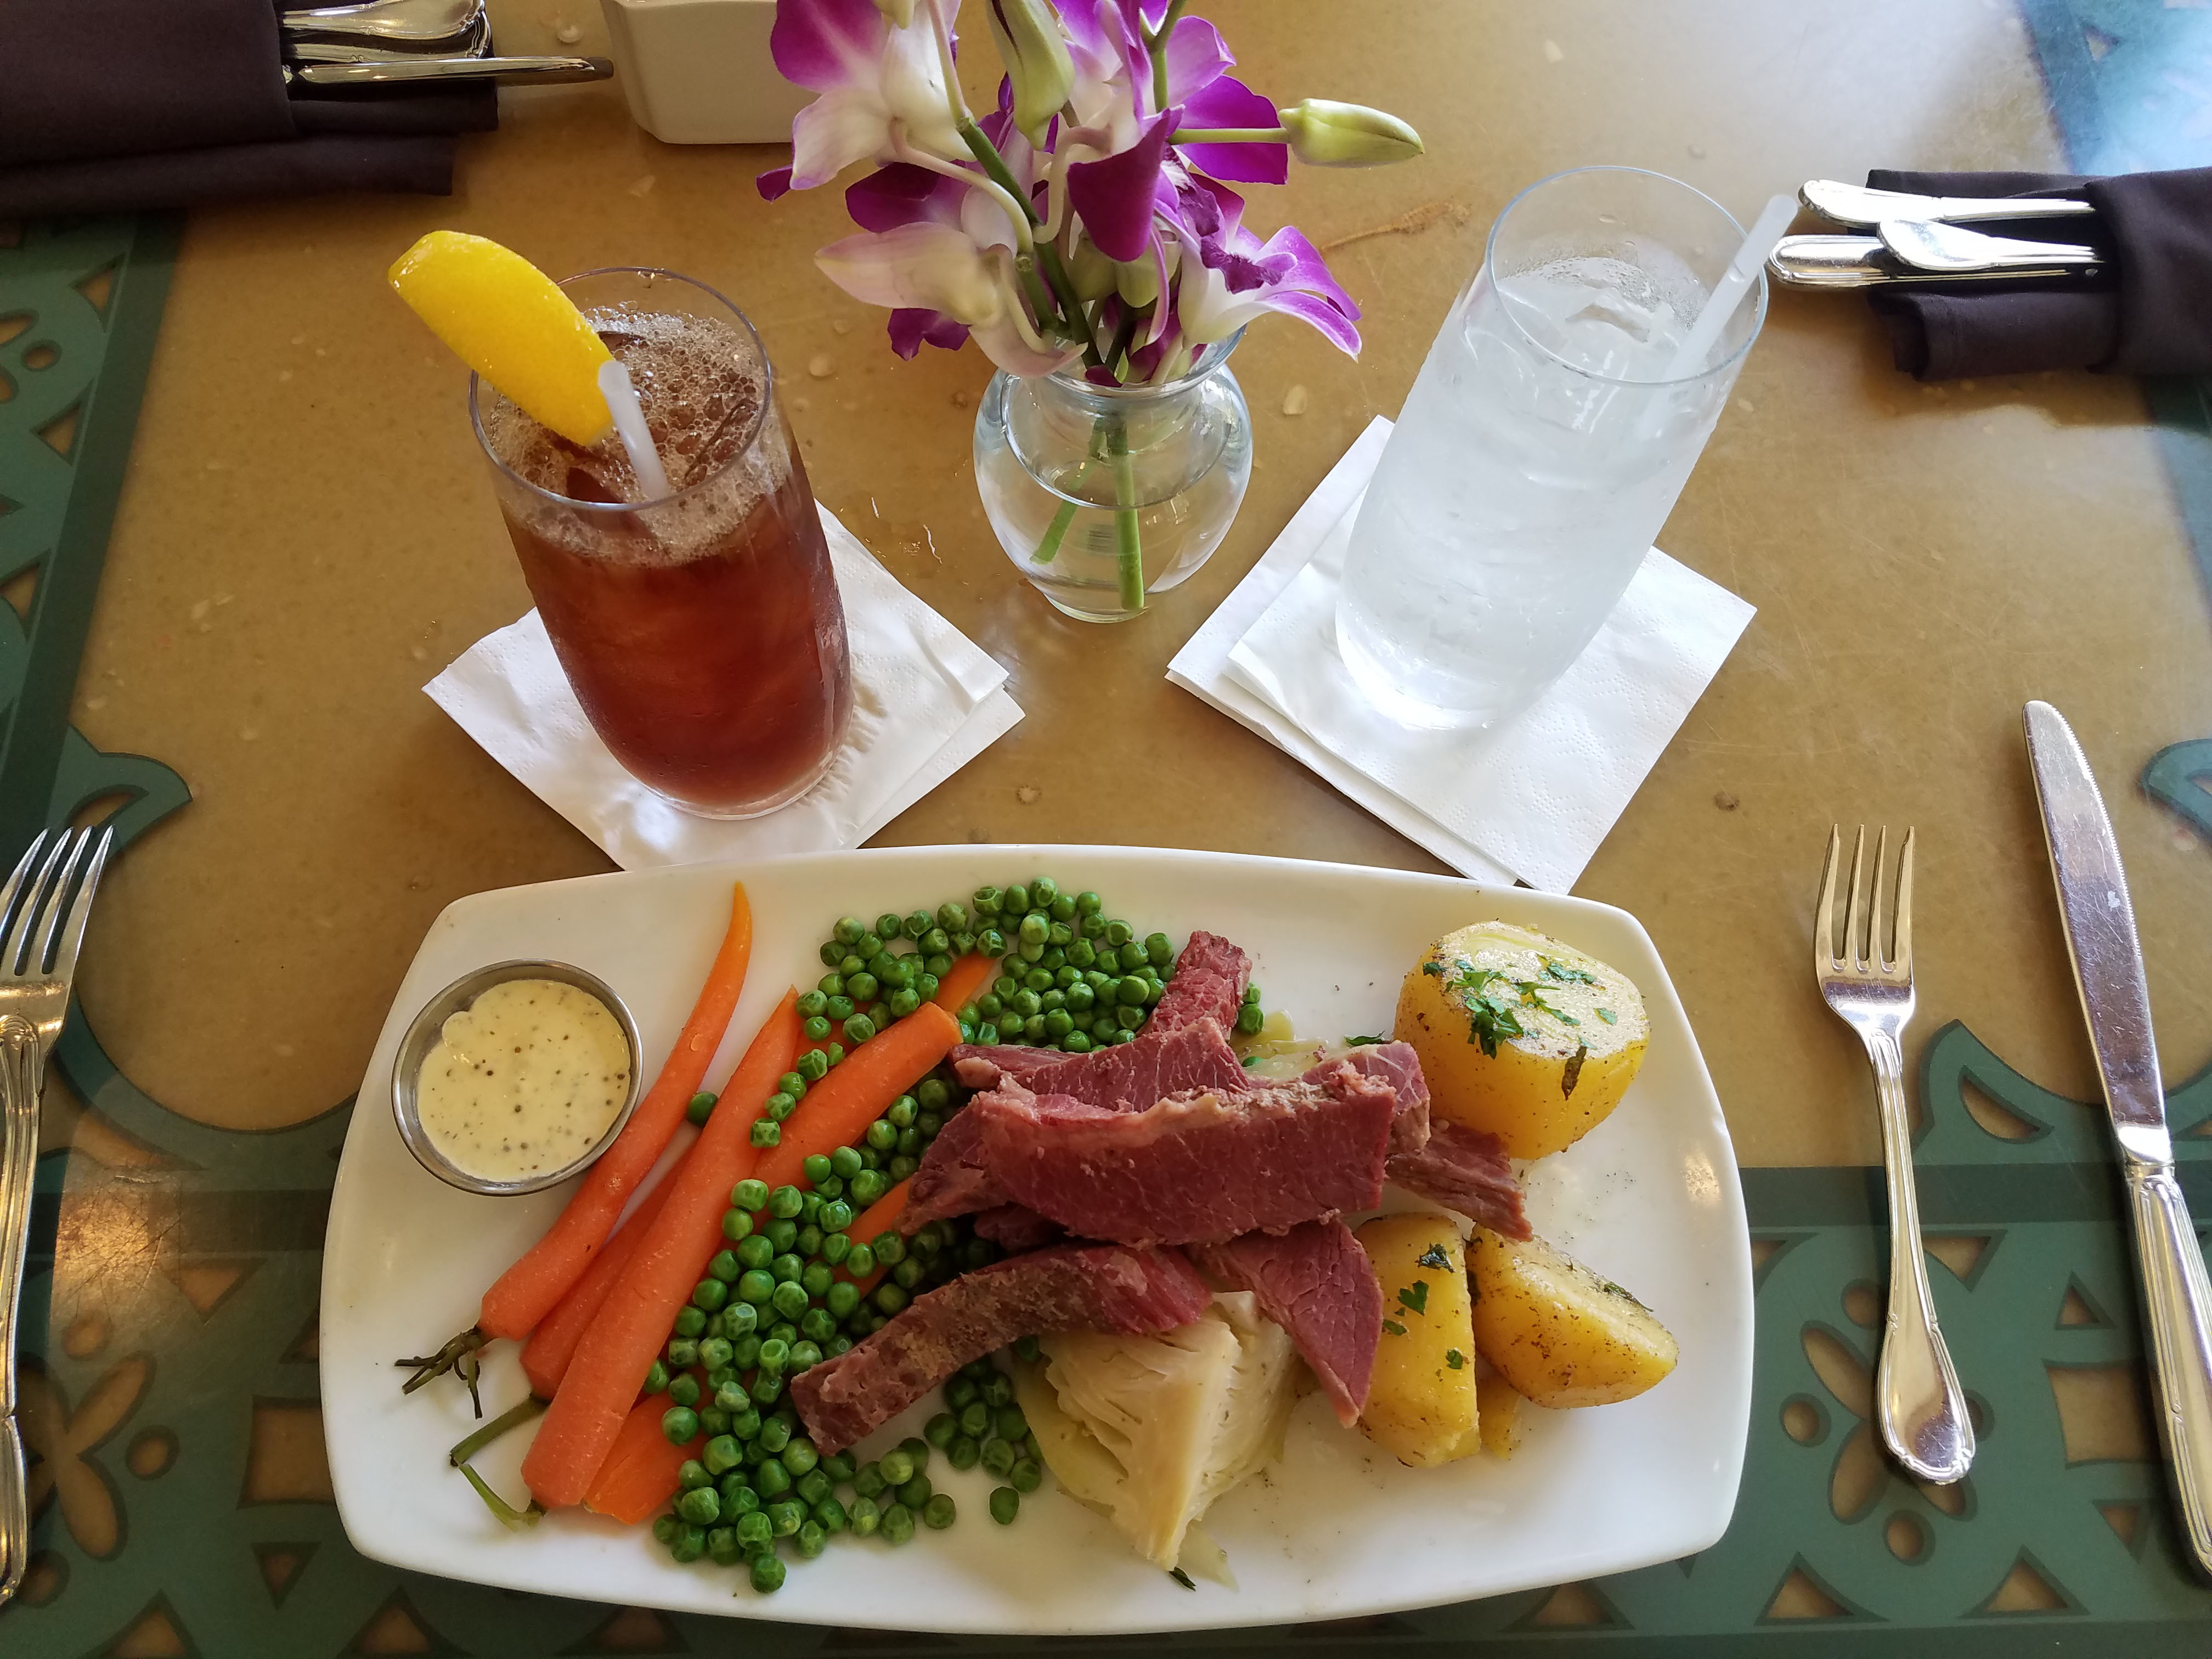 st. patrick's day meal corned beef and cabbage